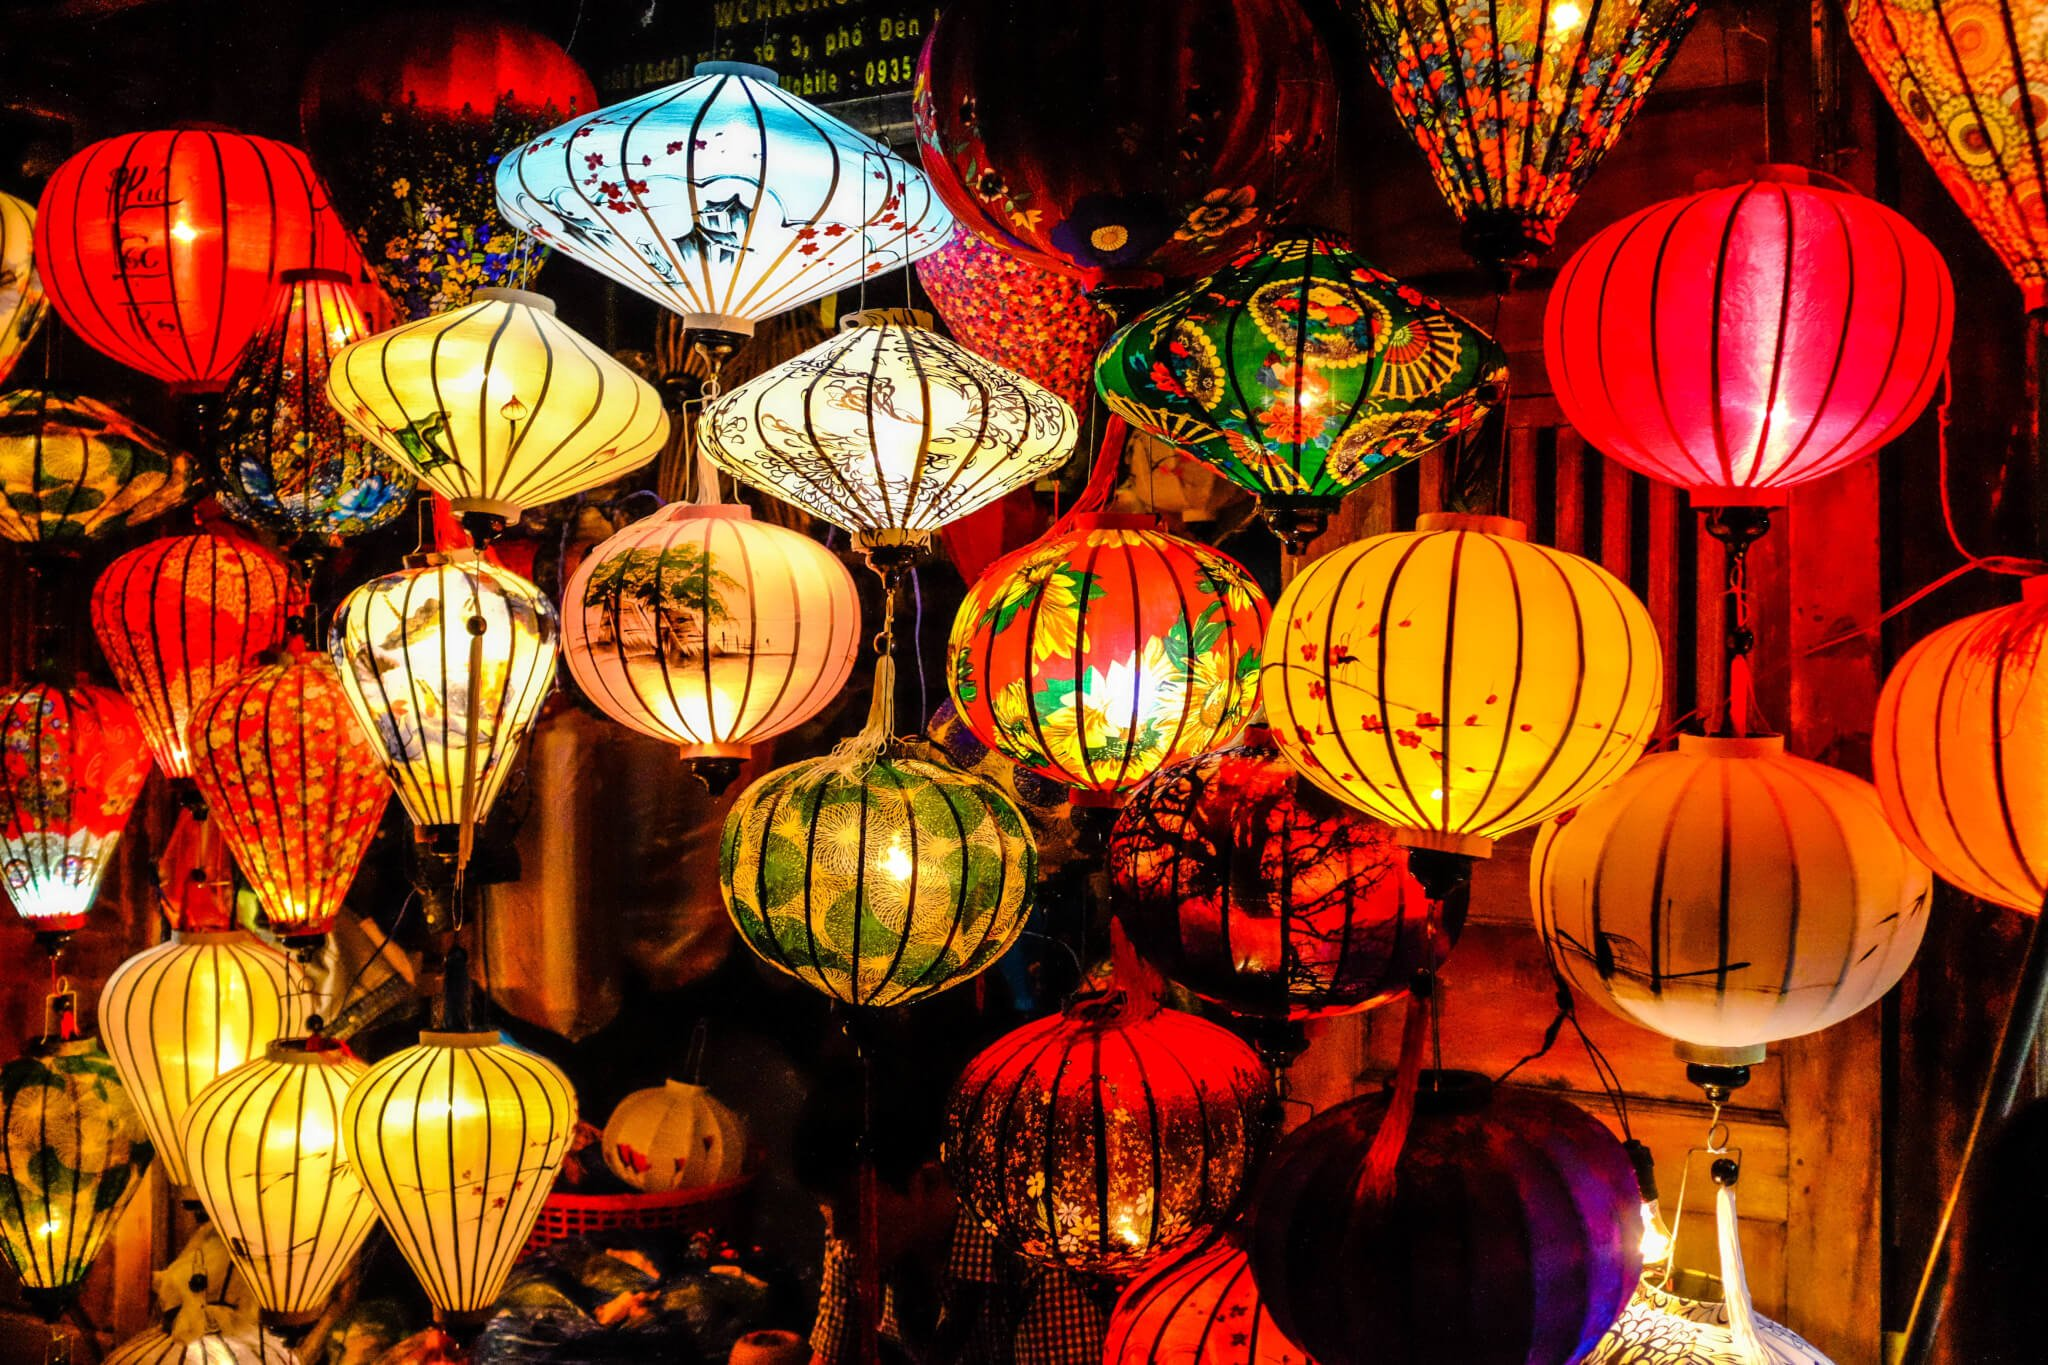 Visiting Hoi An Lantern Festival - Full Moon Celebration of Lights